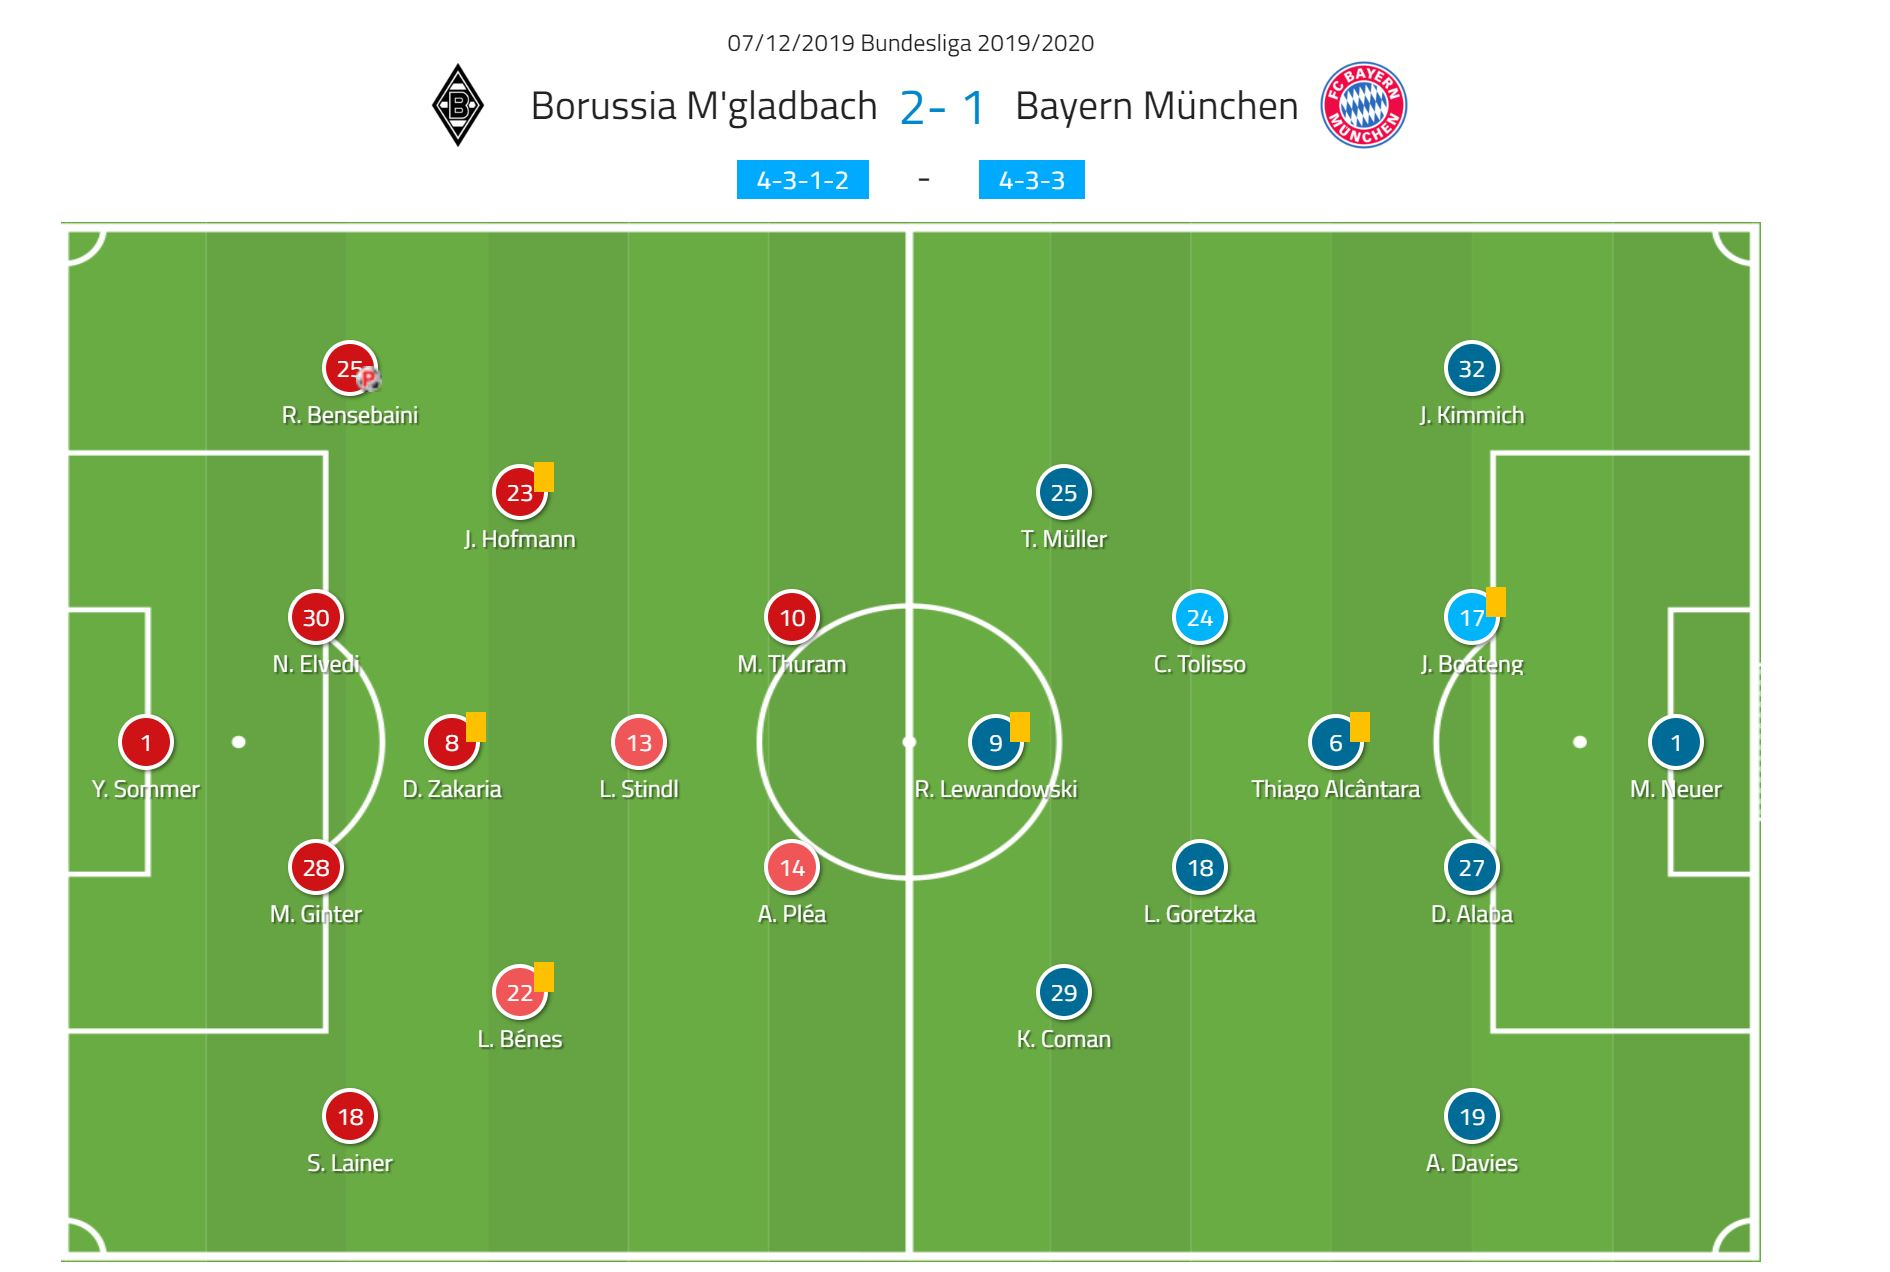 Bundesliga 2019/20: Borussia Monchengladbach vs Bayern Munich- tactical analysis tactics